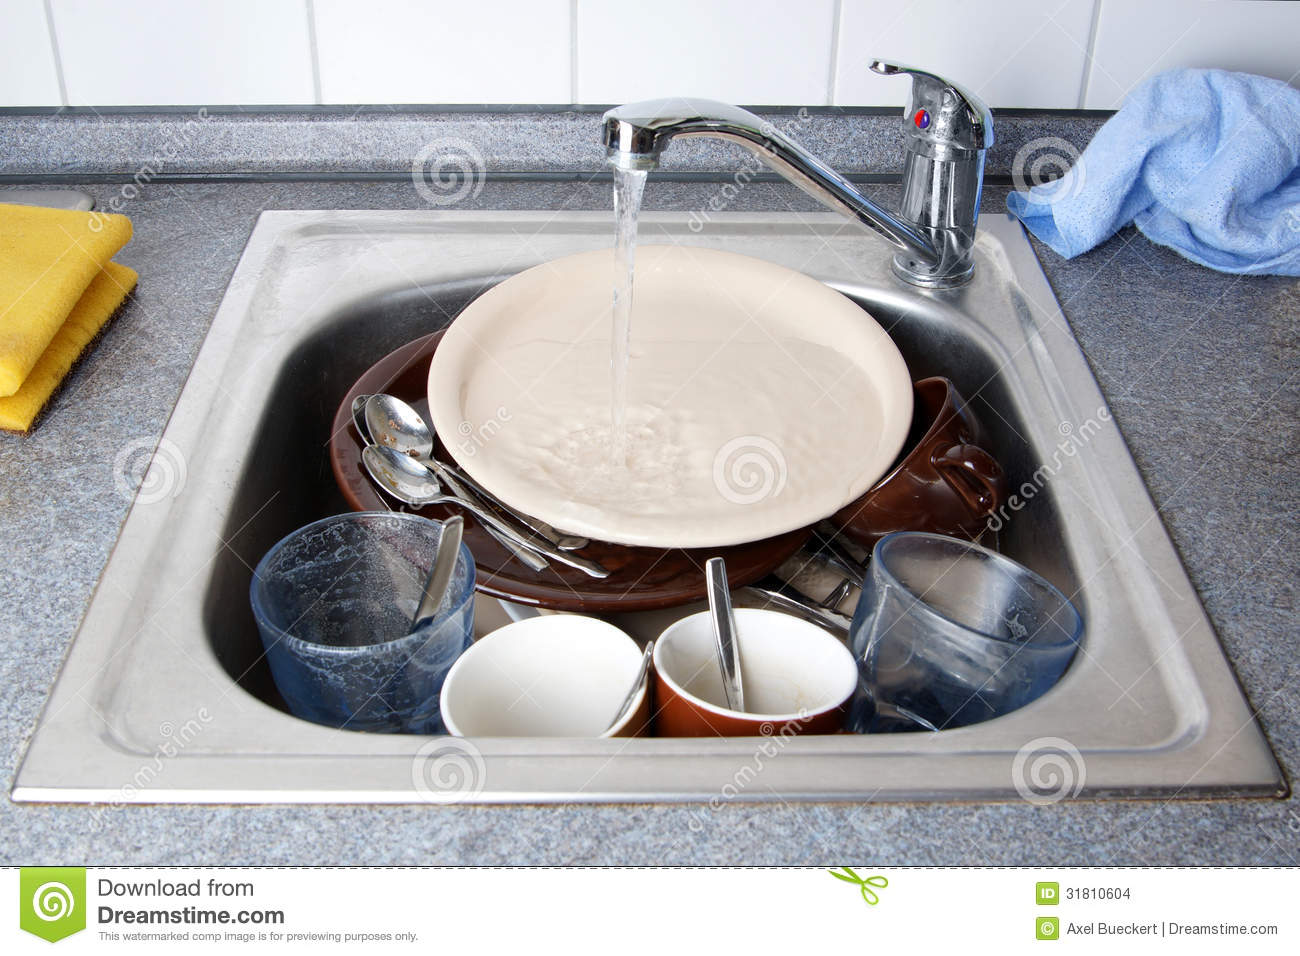 Kitchen Sink With Dishes dishes kitchen sink clipart | home design ideas